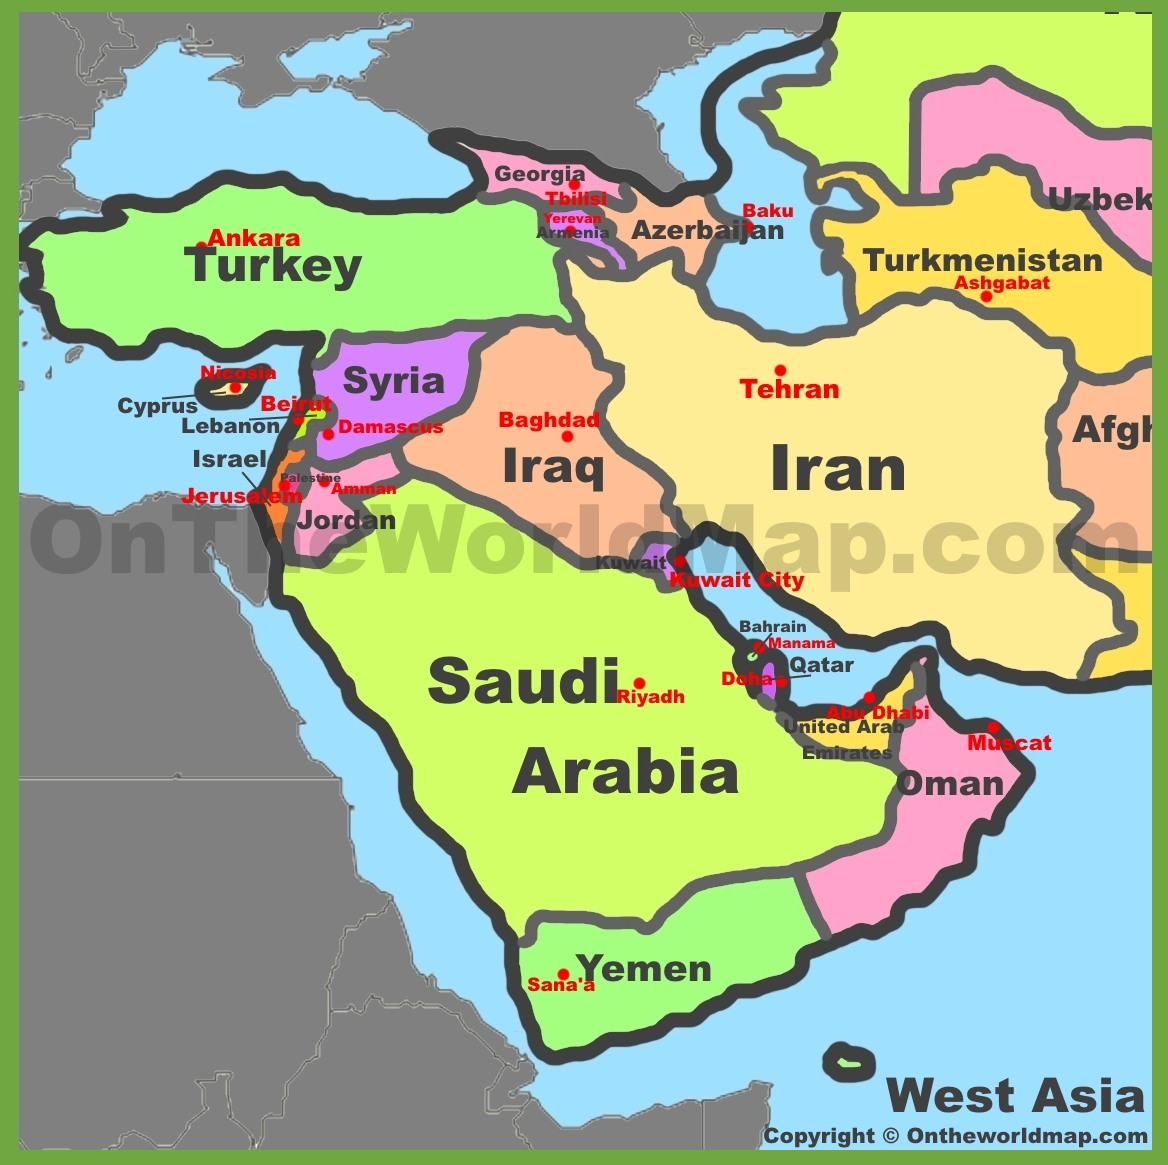 West Asia Map Map of West Asia (Western Asia)